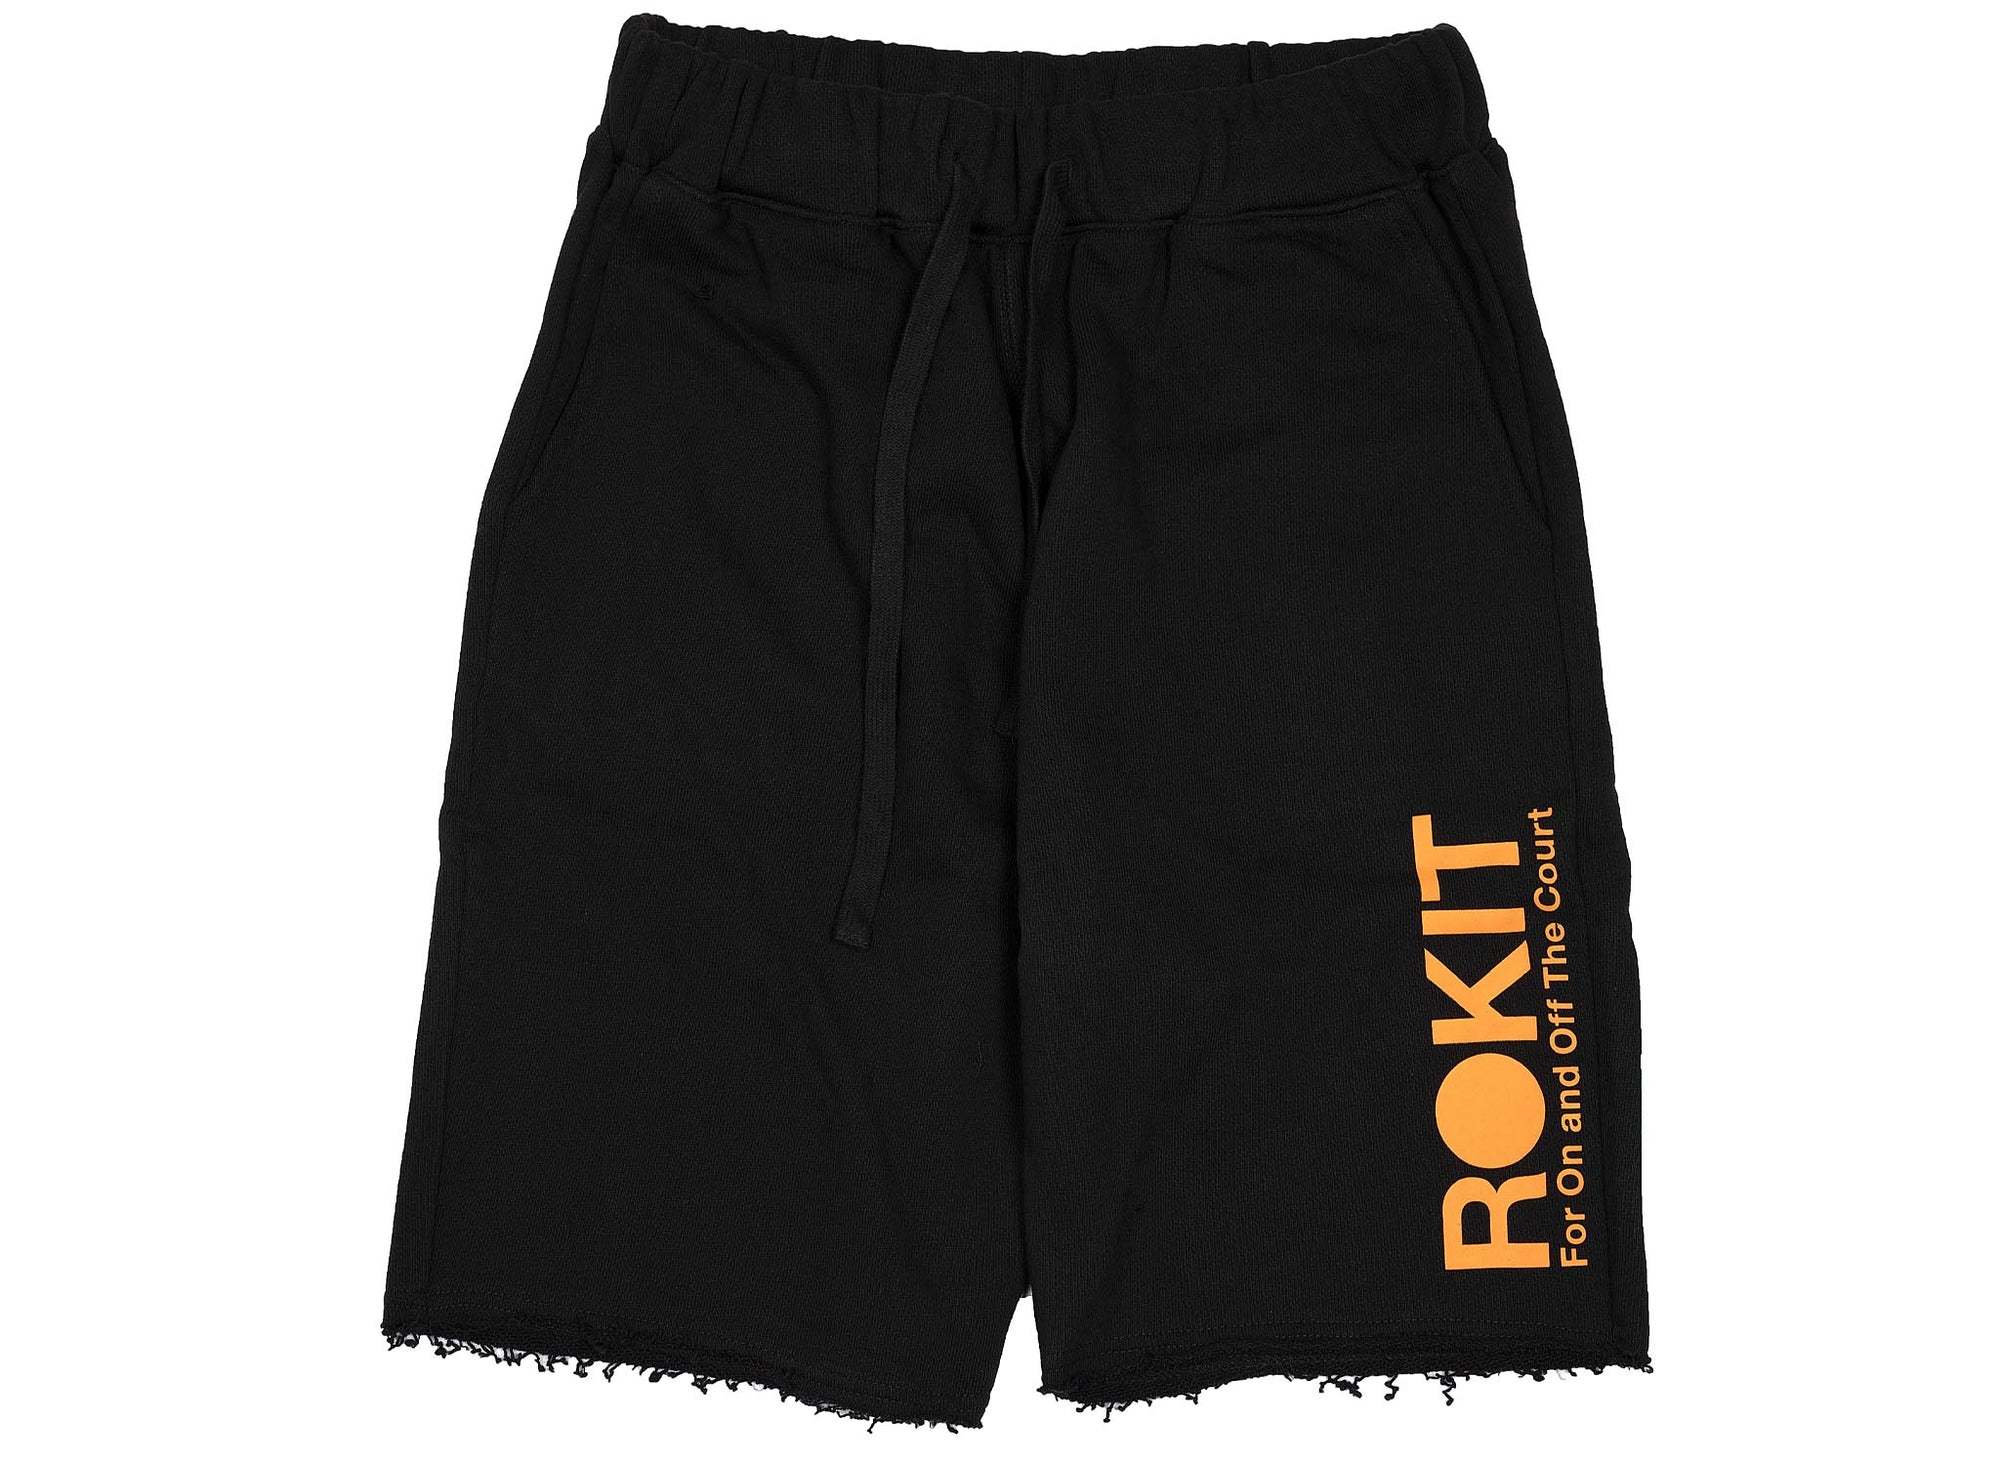 ROKIT the diver fleece short